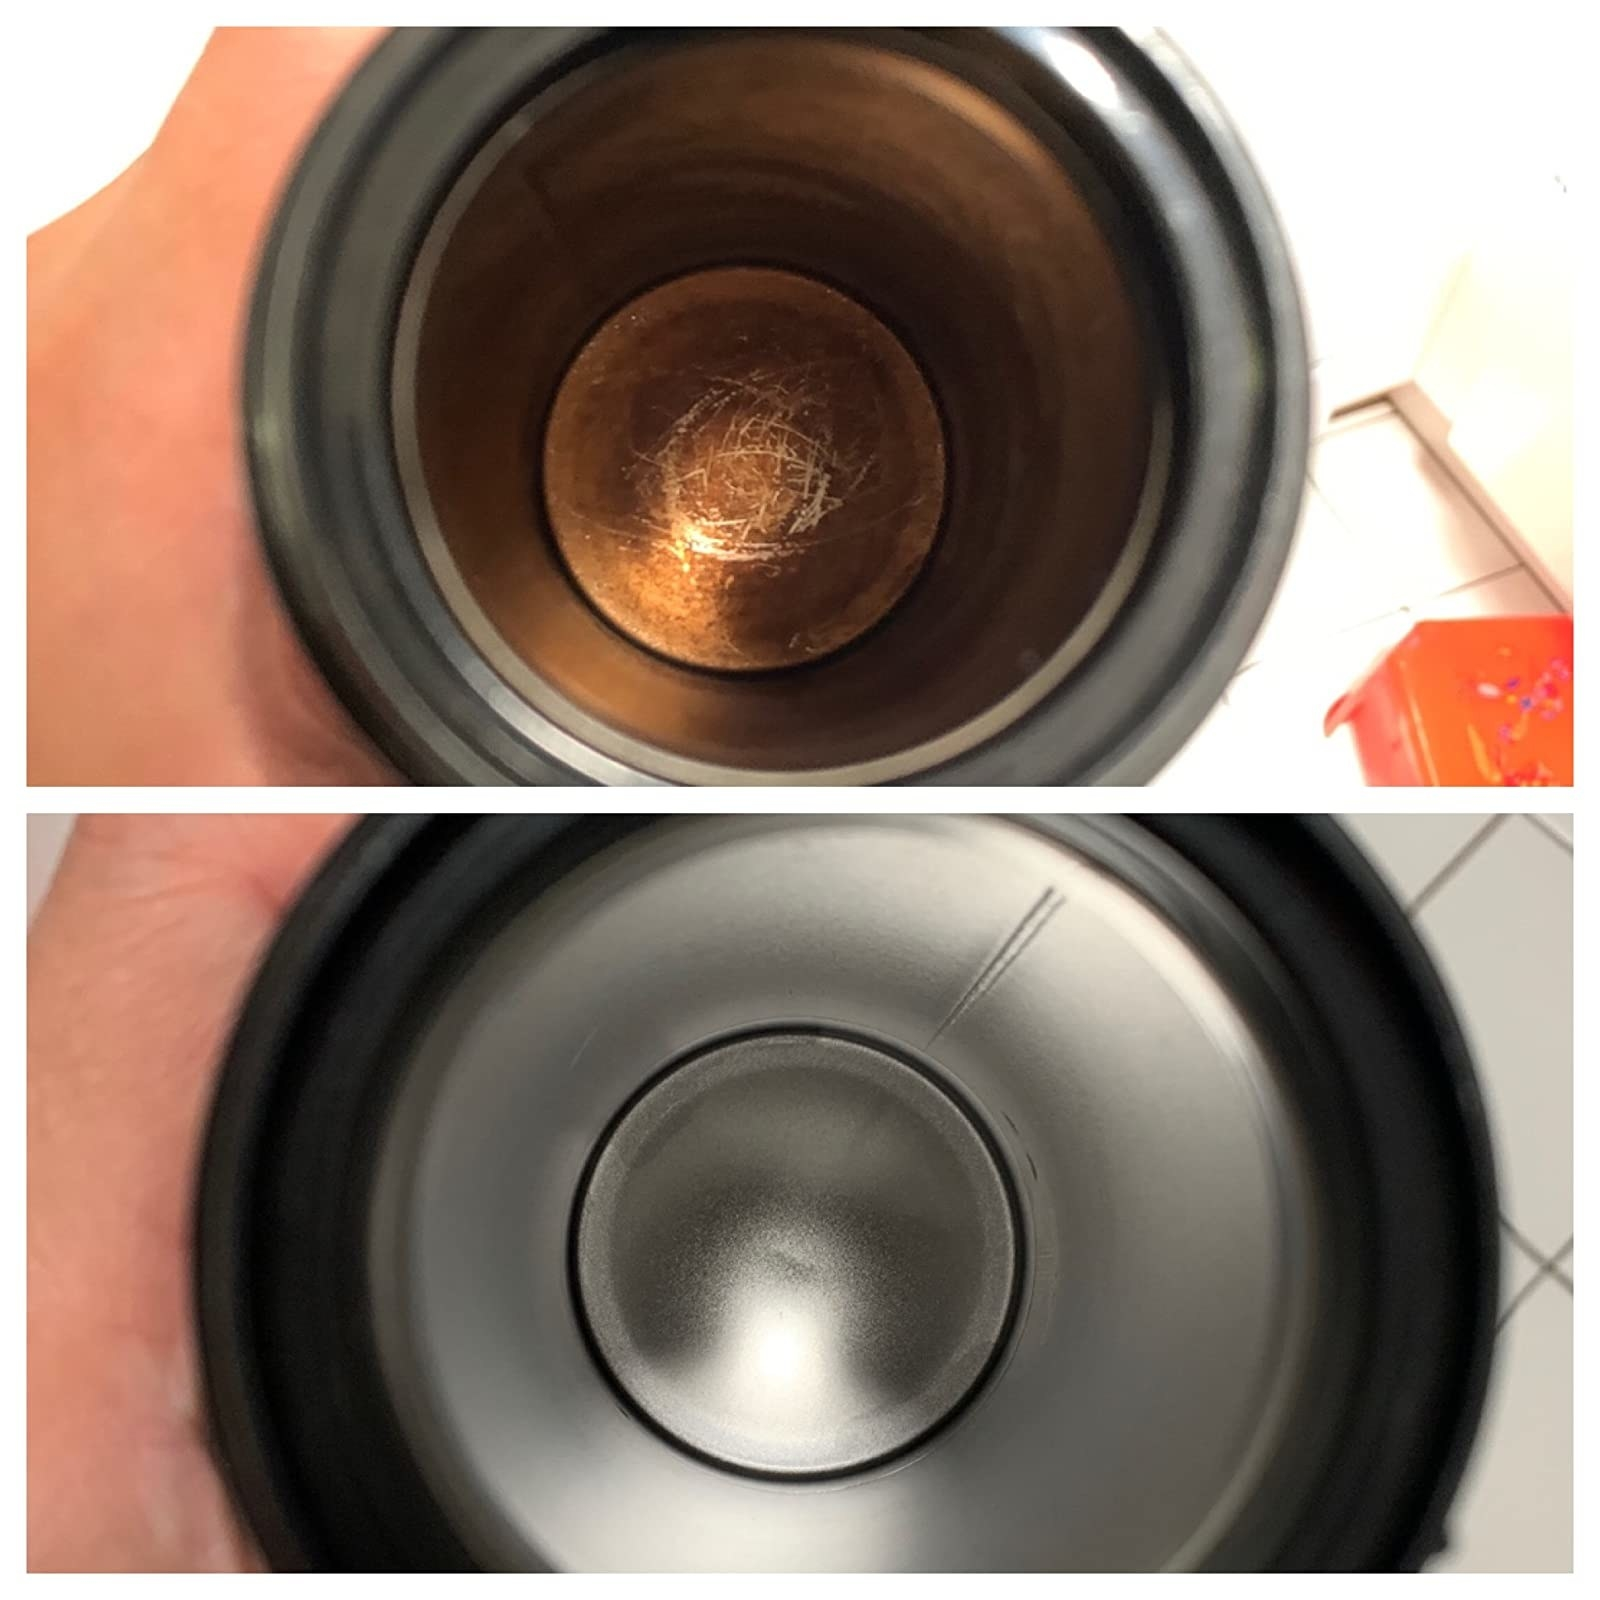 before and after photo of reviewer's travel mug, showing it is completely cleaned and restored after using the tablets